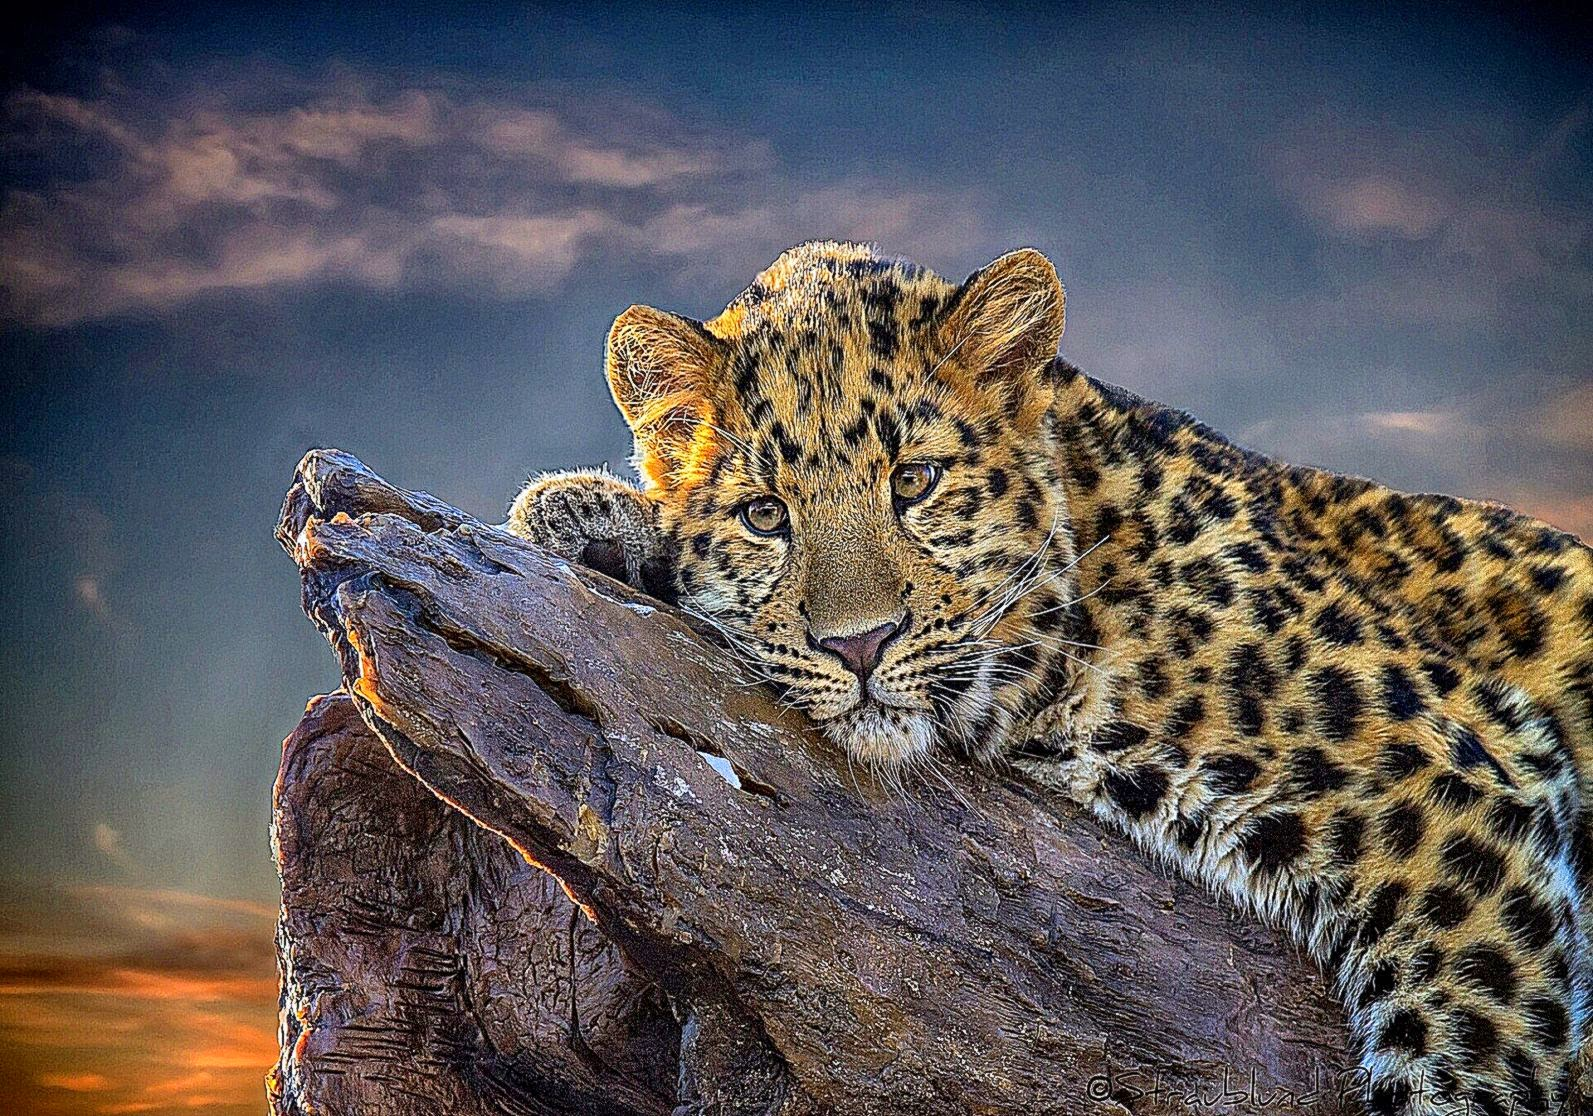 611 Leopard Wallpapers  Leopard Backgrounds